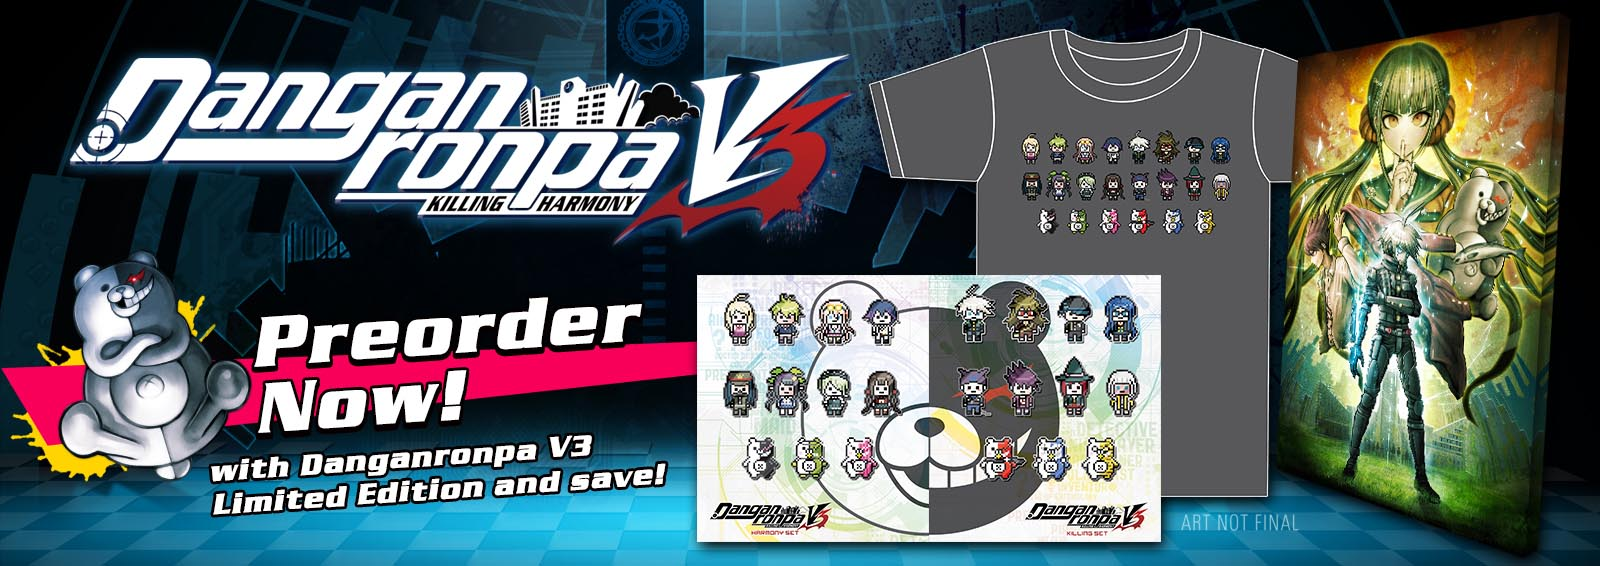 Preorder Danganronpa V3 Limited Edition and Save on Merchandise!